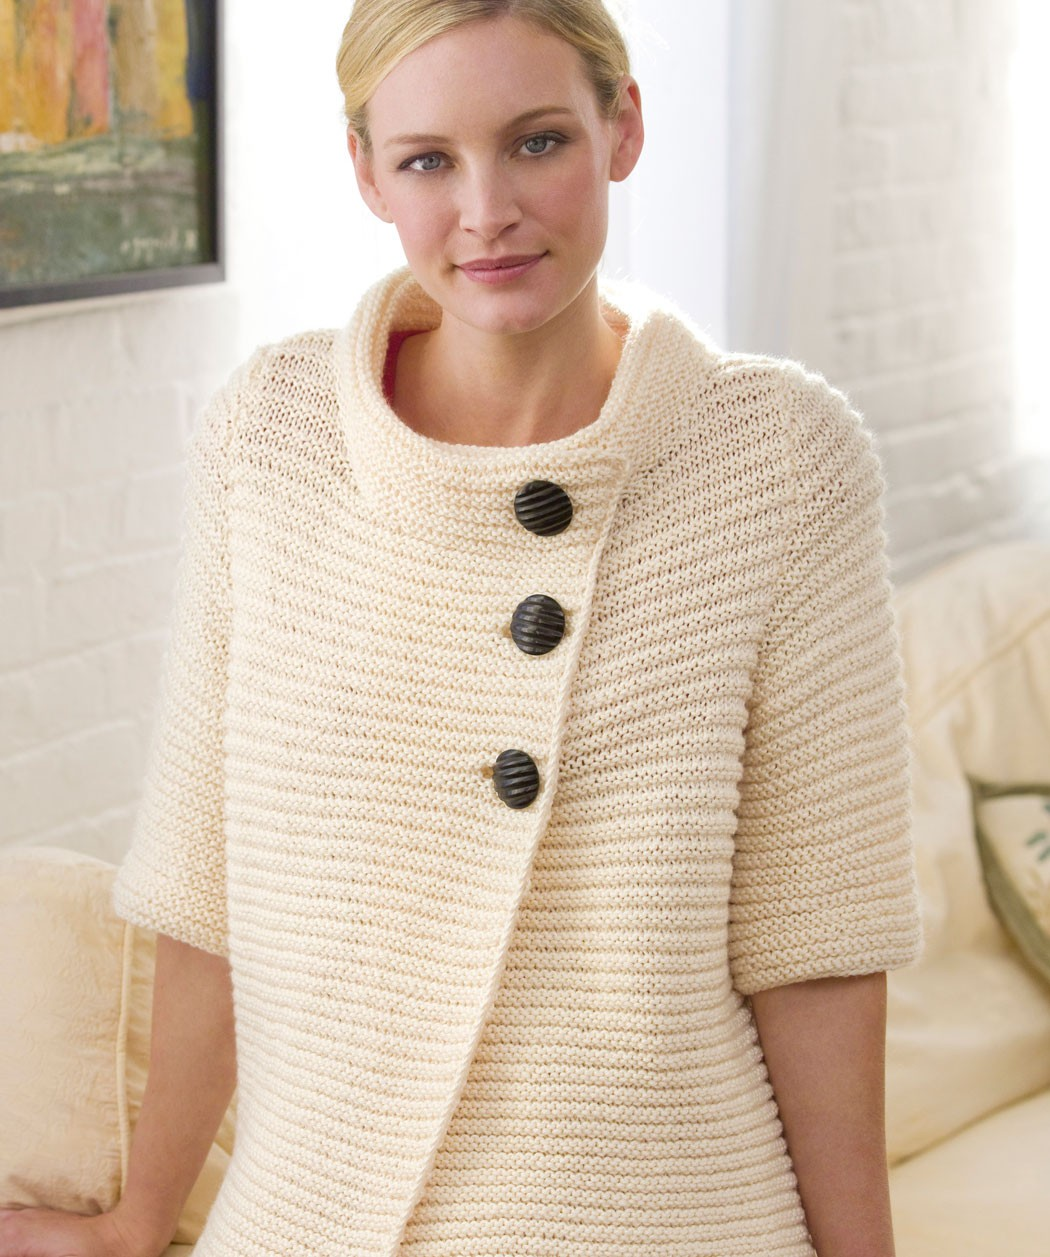 Sweater Coat Knitting Pattern : Knitted Sweater Patterns for Women A Knitting Blog